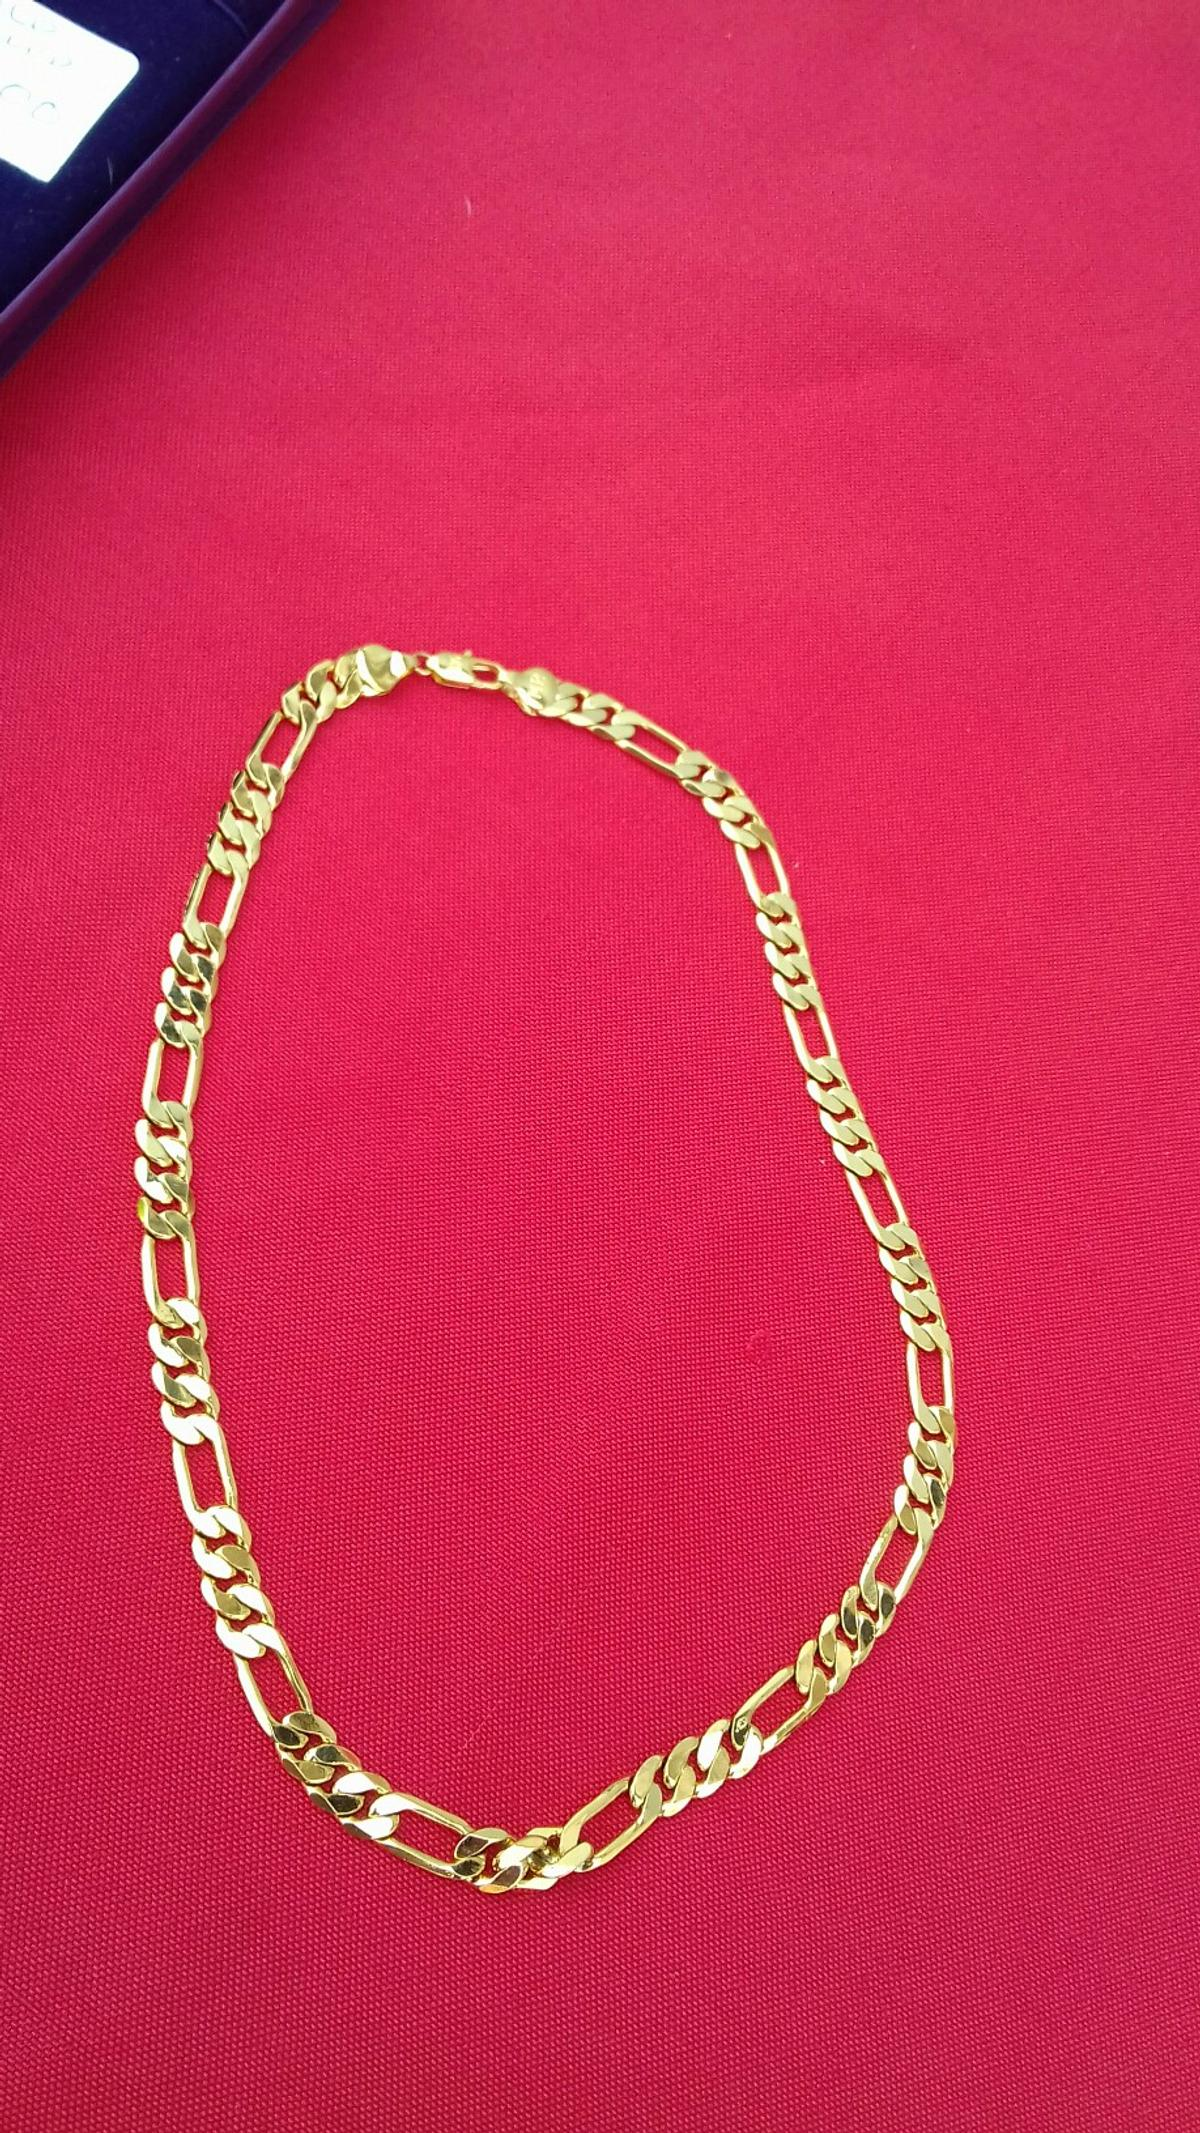 New Mens Gold Filled Costume Necklace In Po2 Portsmouth For 15 00